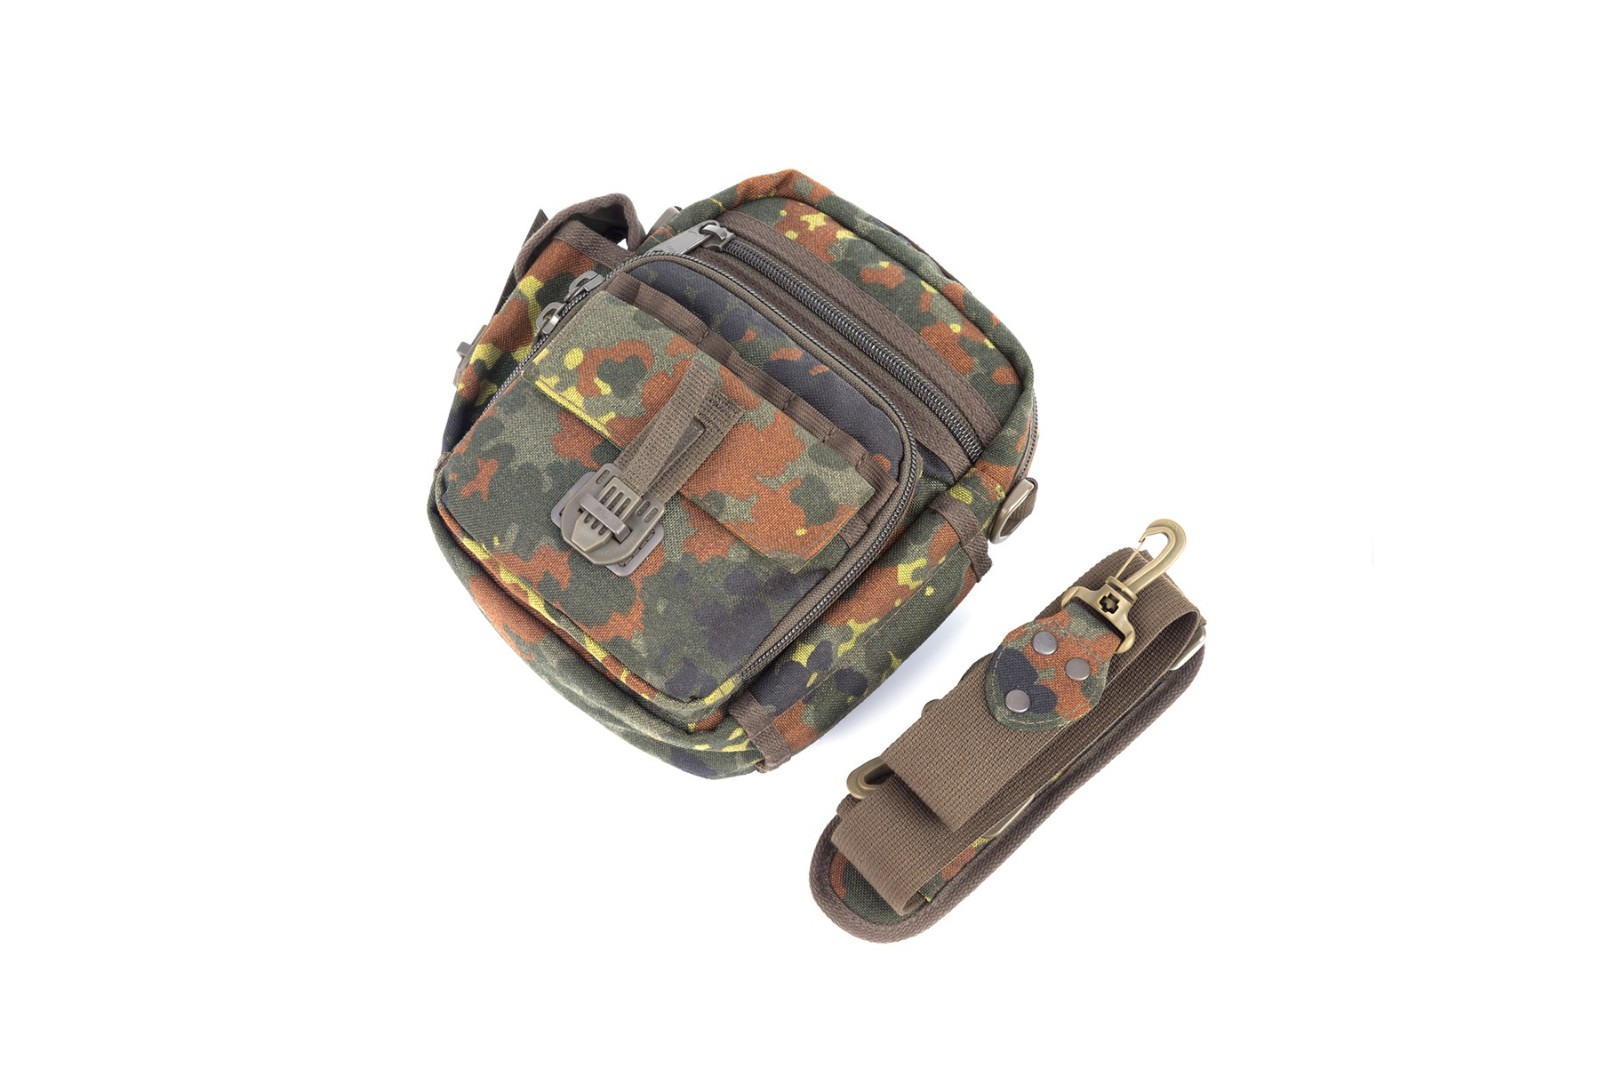 GF bags-Professional Military Gear Bags and Tactical Pouch Bag From GF Bags-4